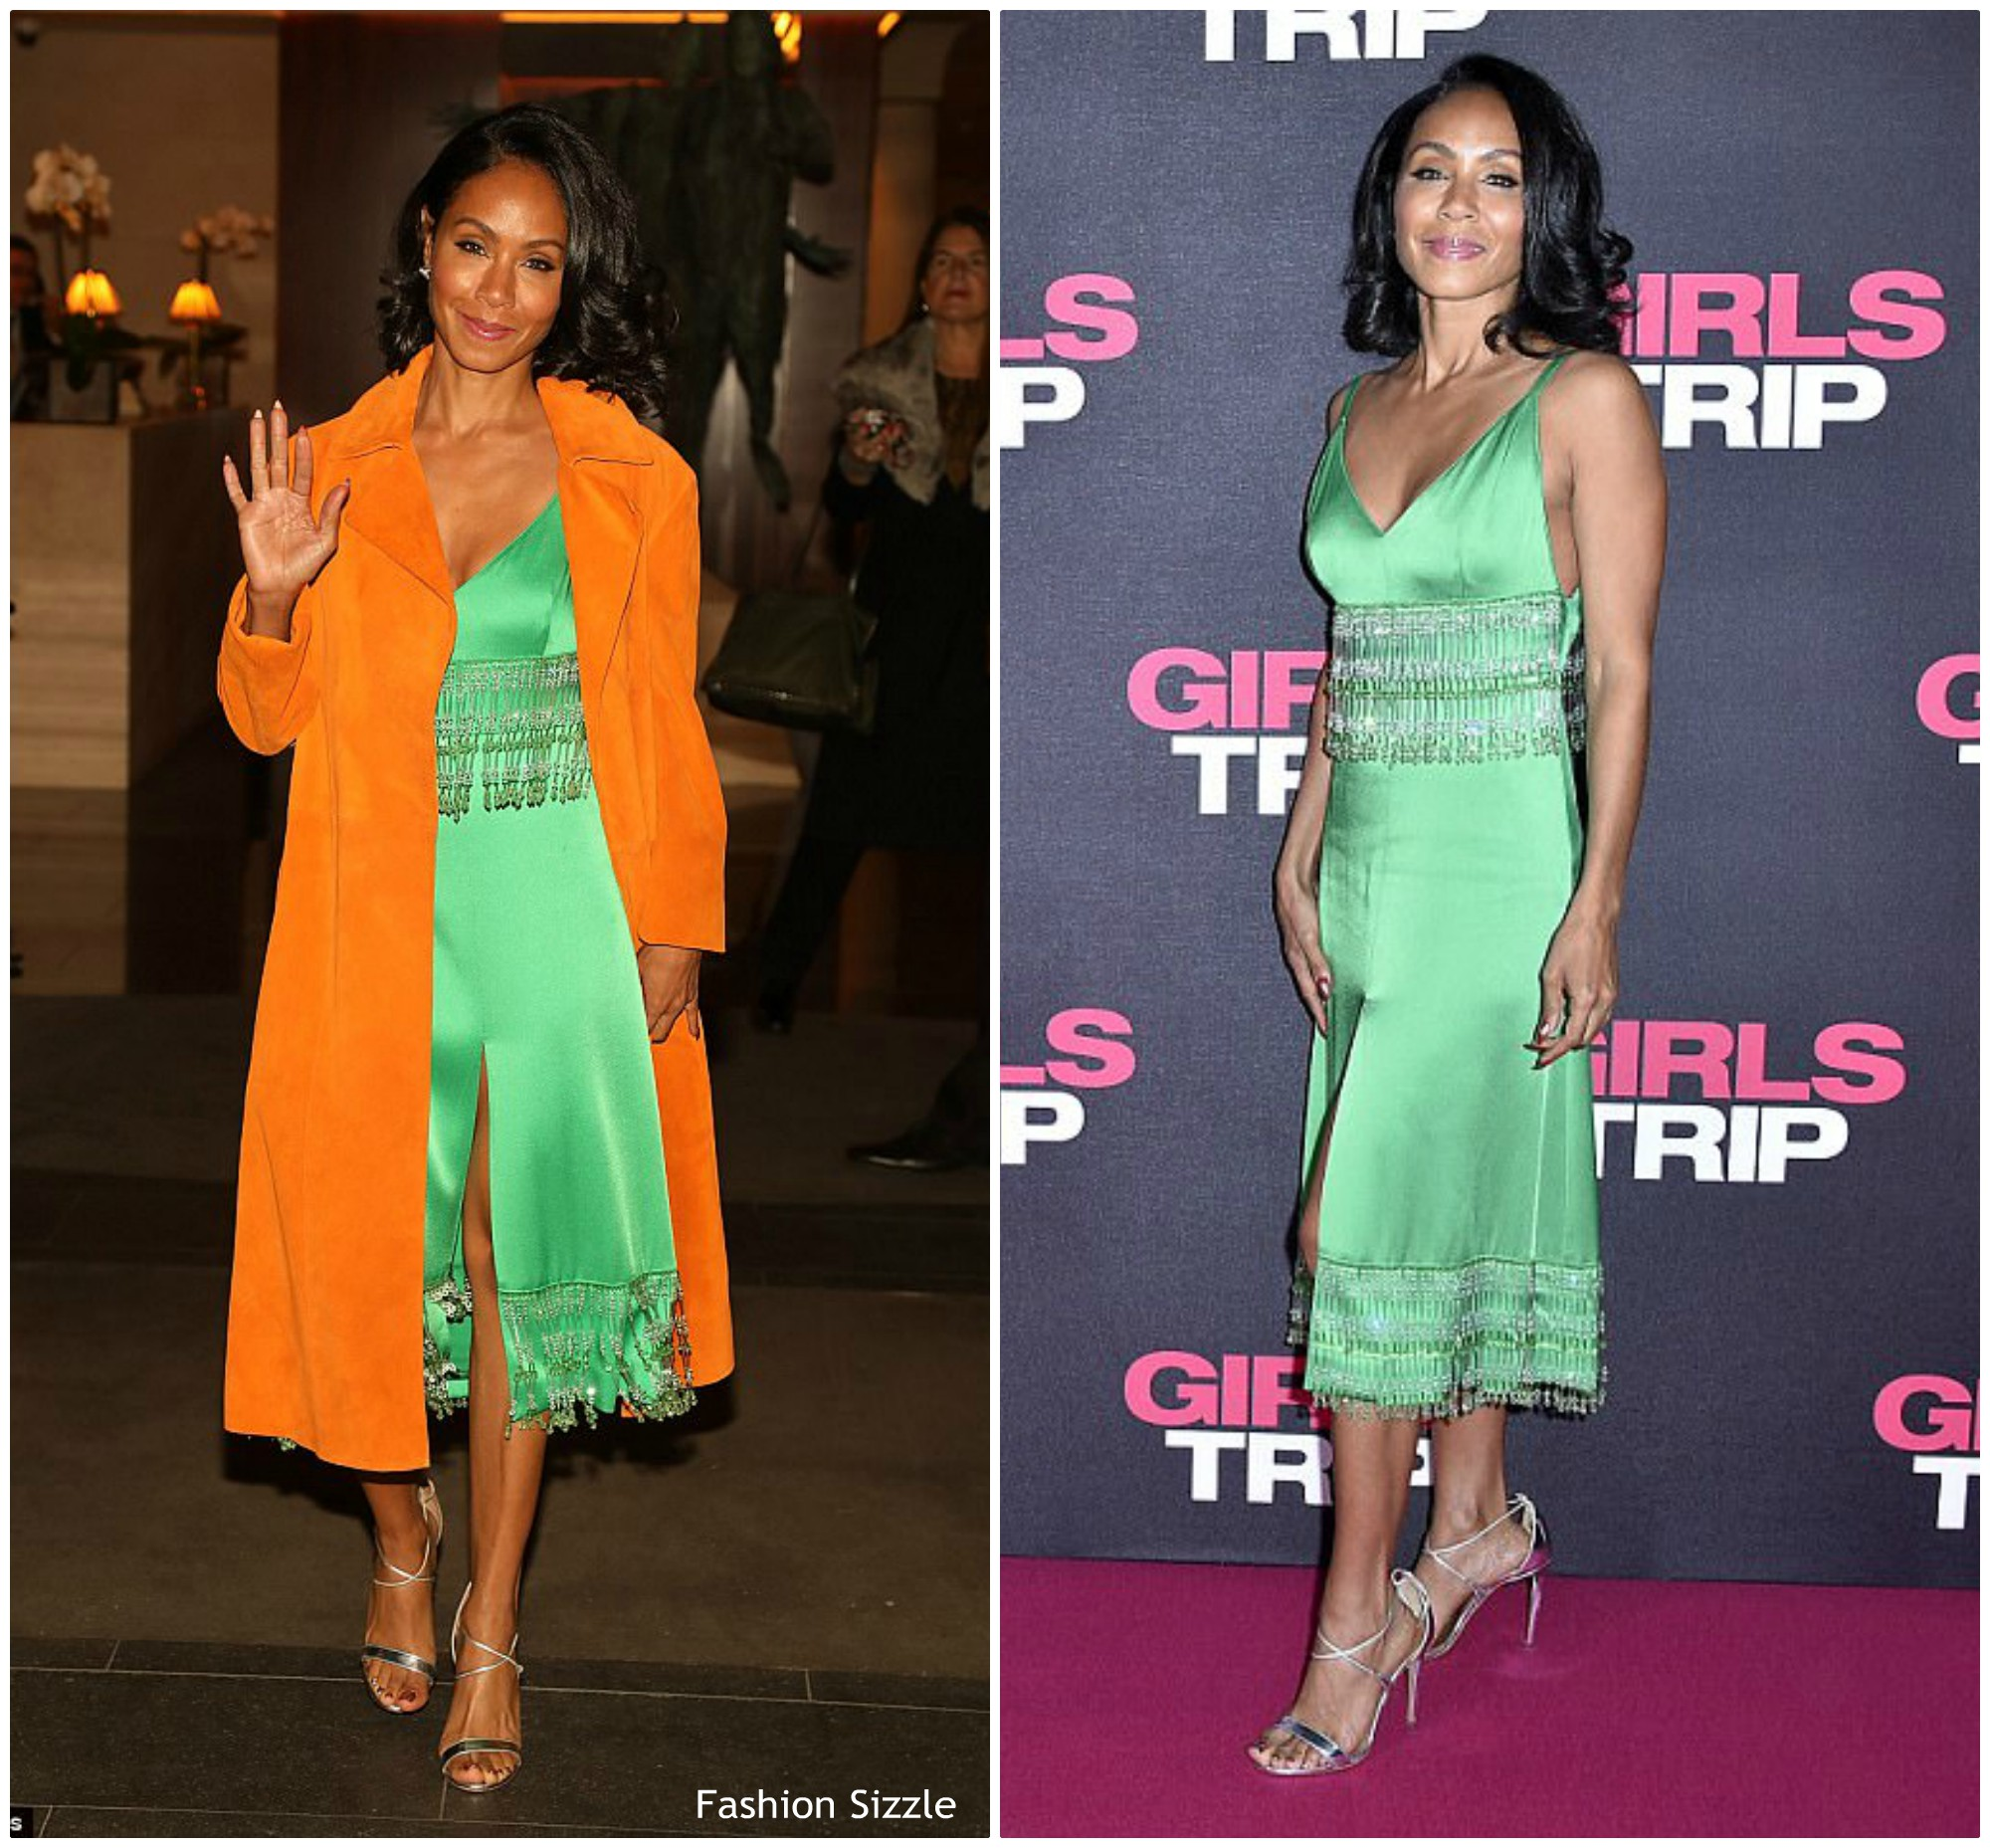 jada-pinkett-smith-in-prada-girls-trip-paris-premiere